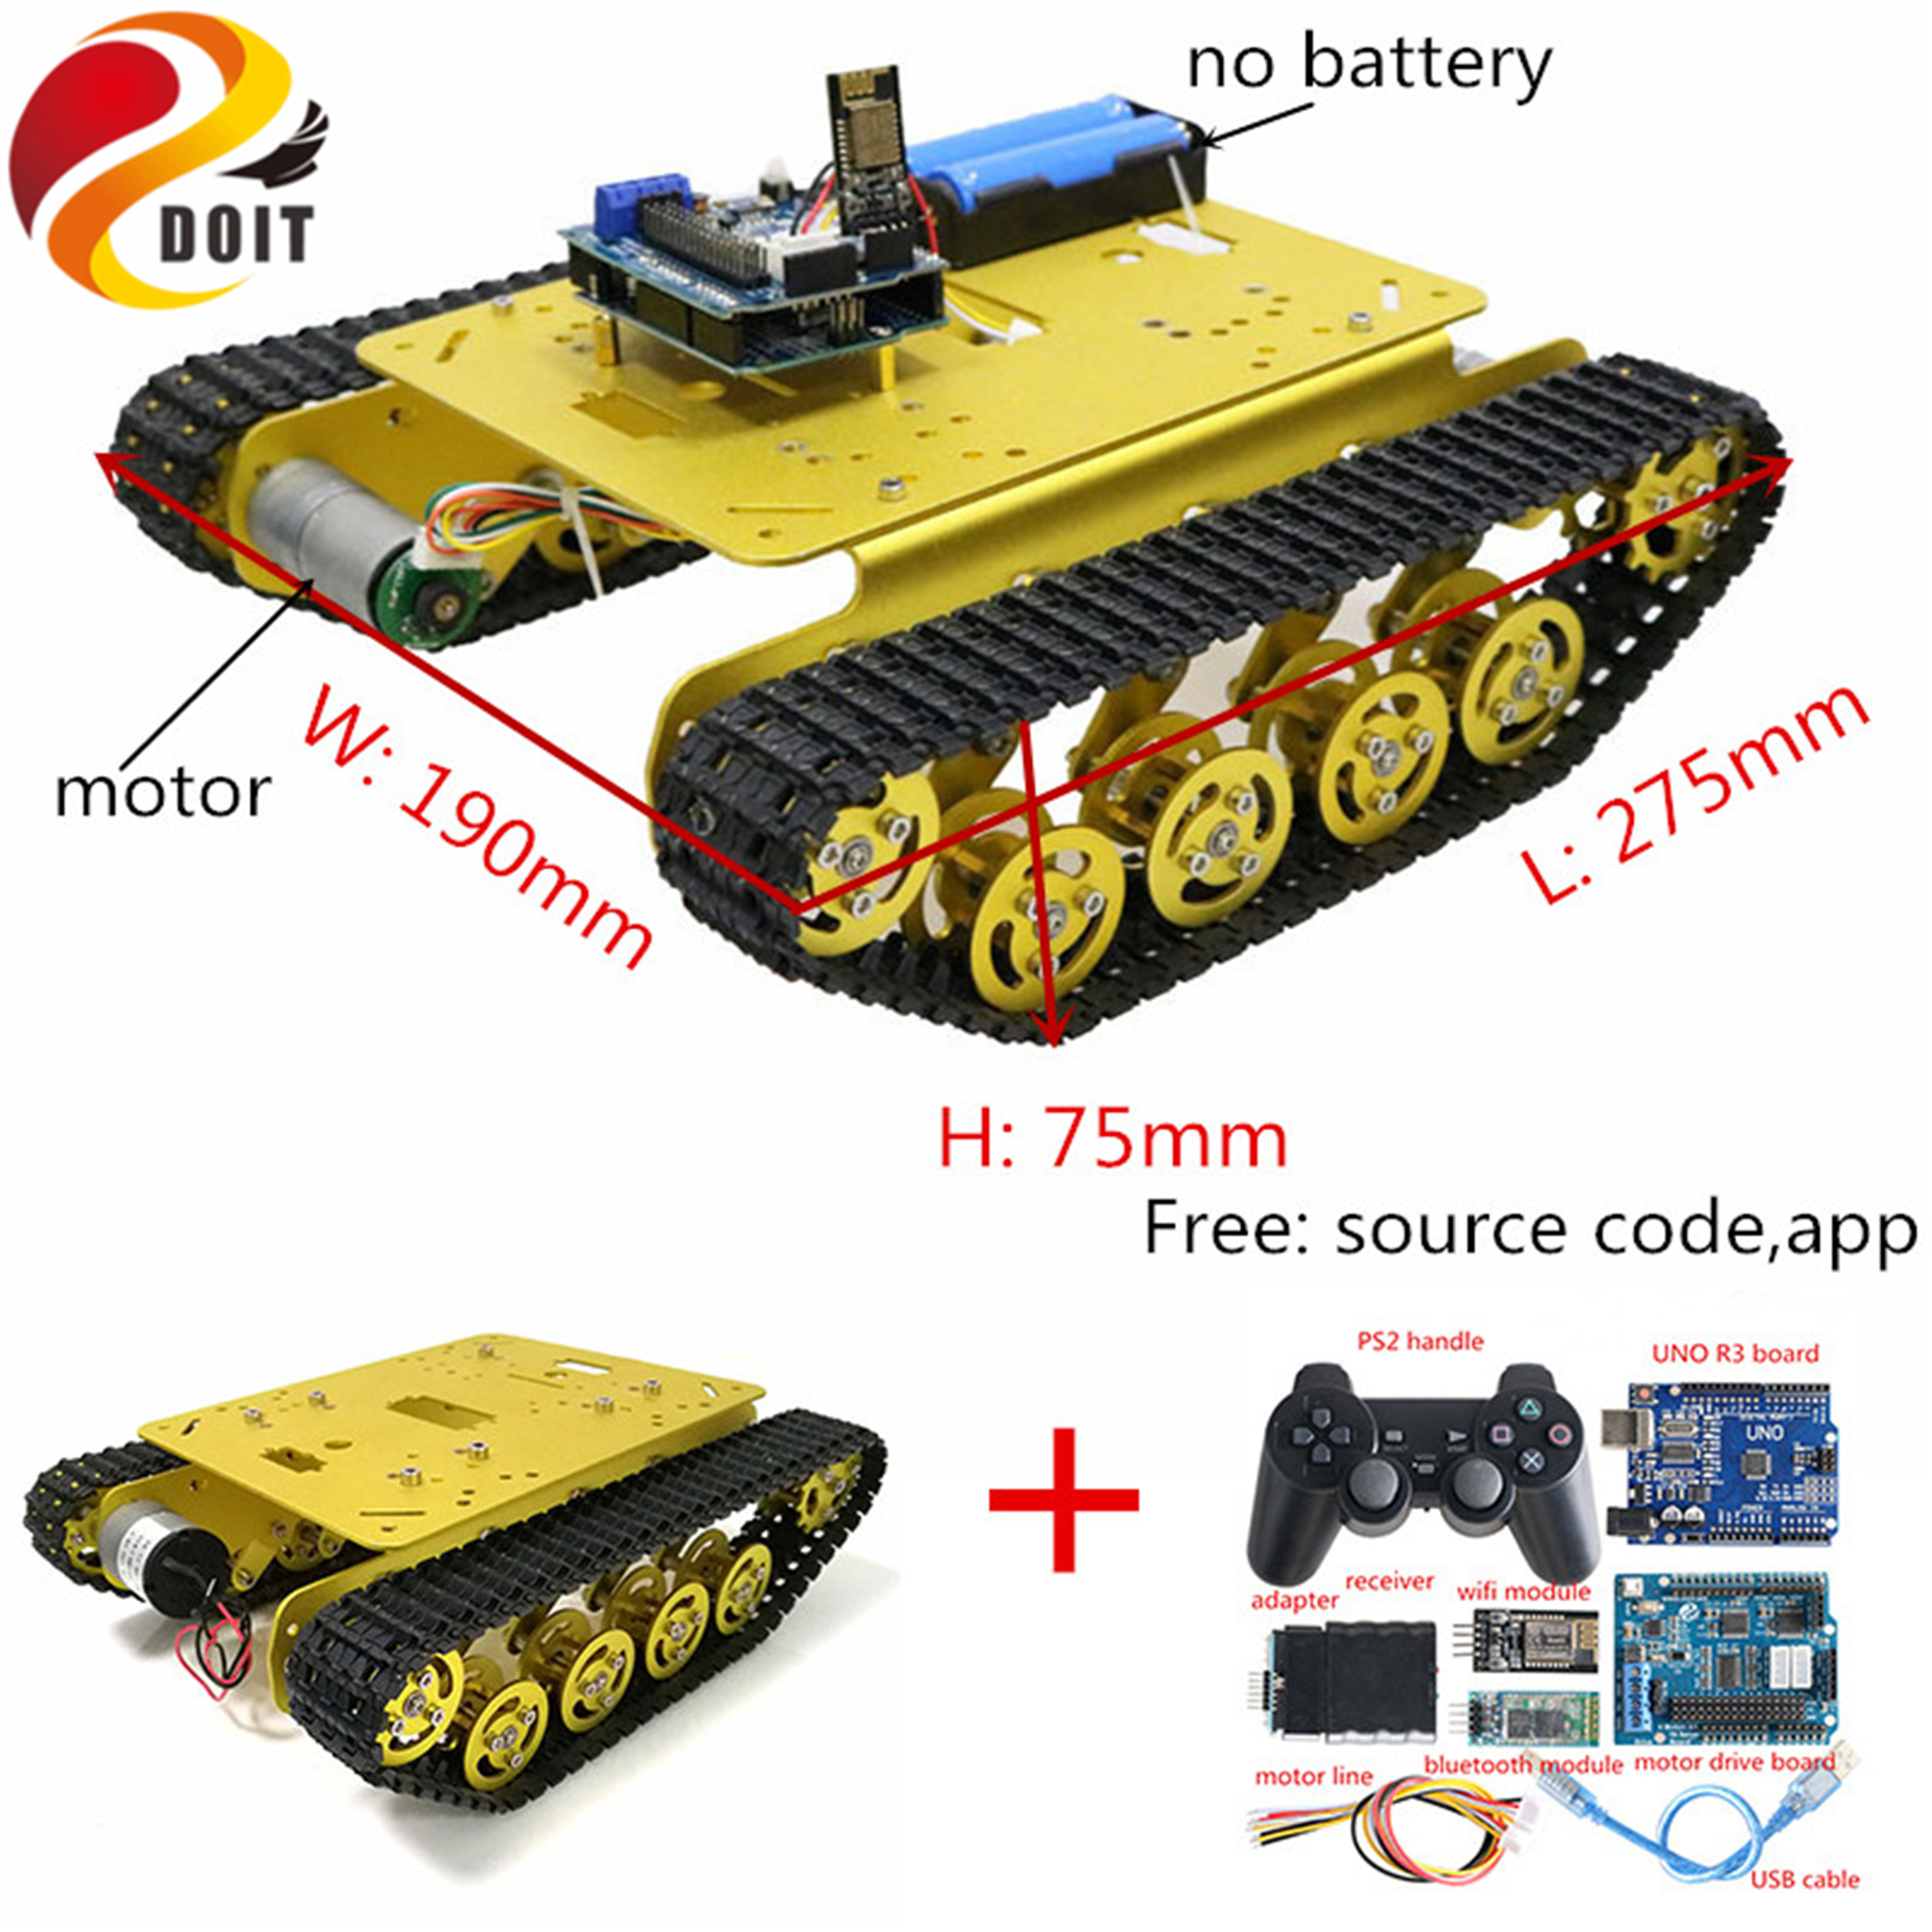 SZDOIT Wifi/Bluetooth/Handle Control TS100 Metal Rc Tank Chassis Smart Crawler Shock Absorption Robot Kit DIY For Arduino Toys